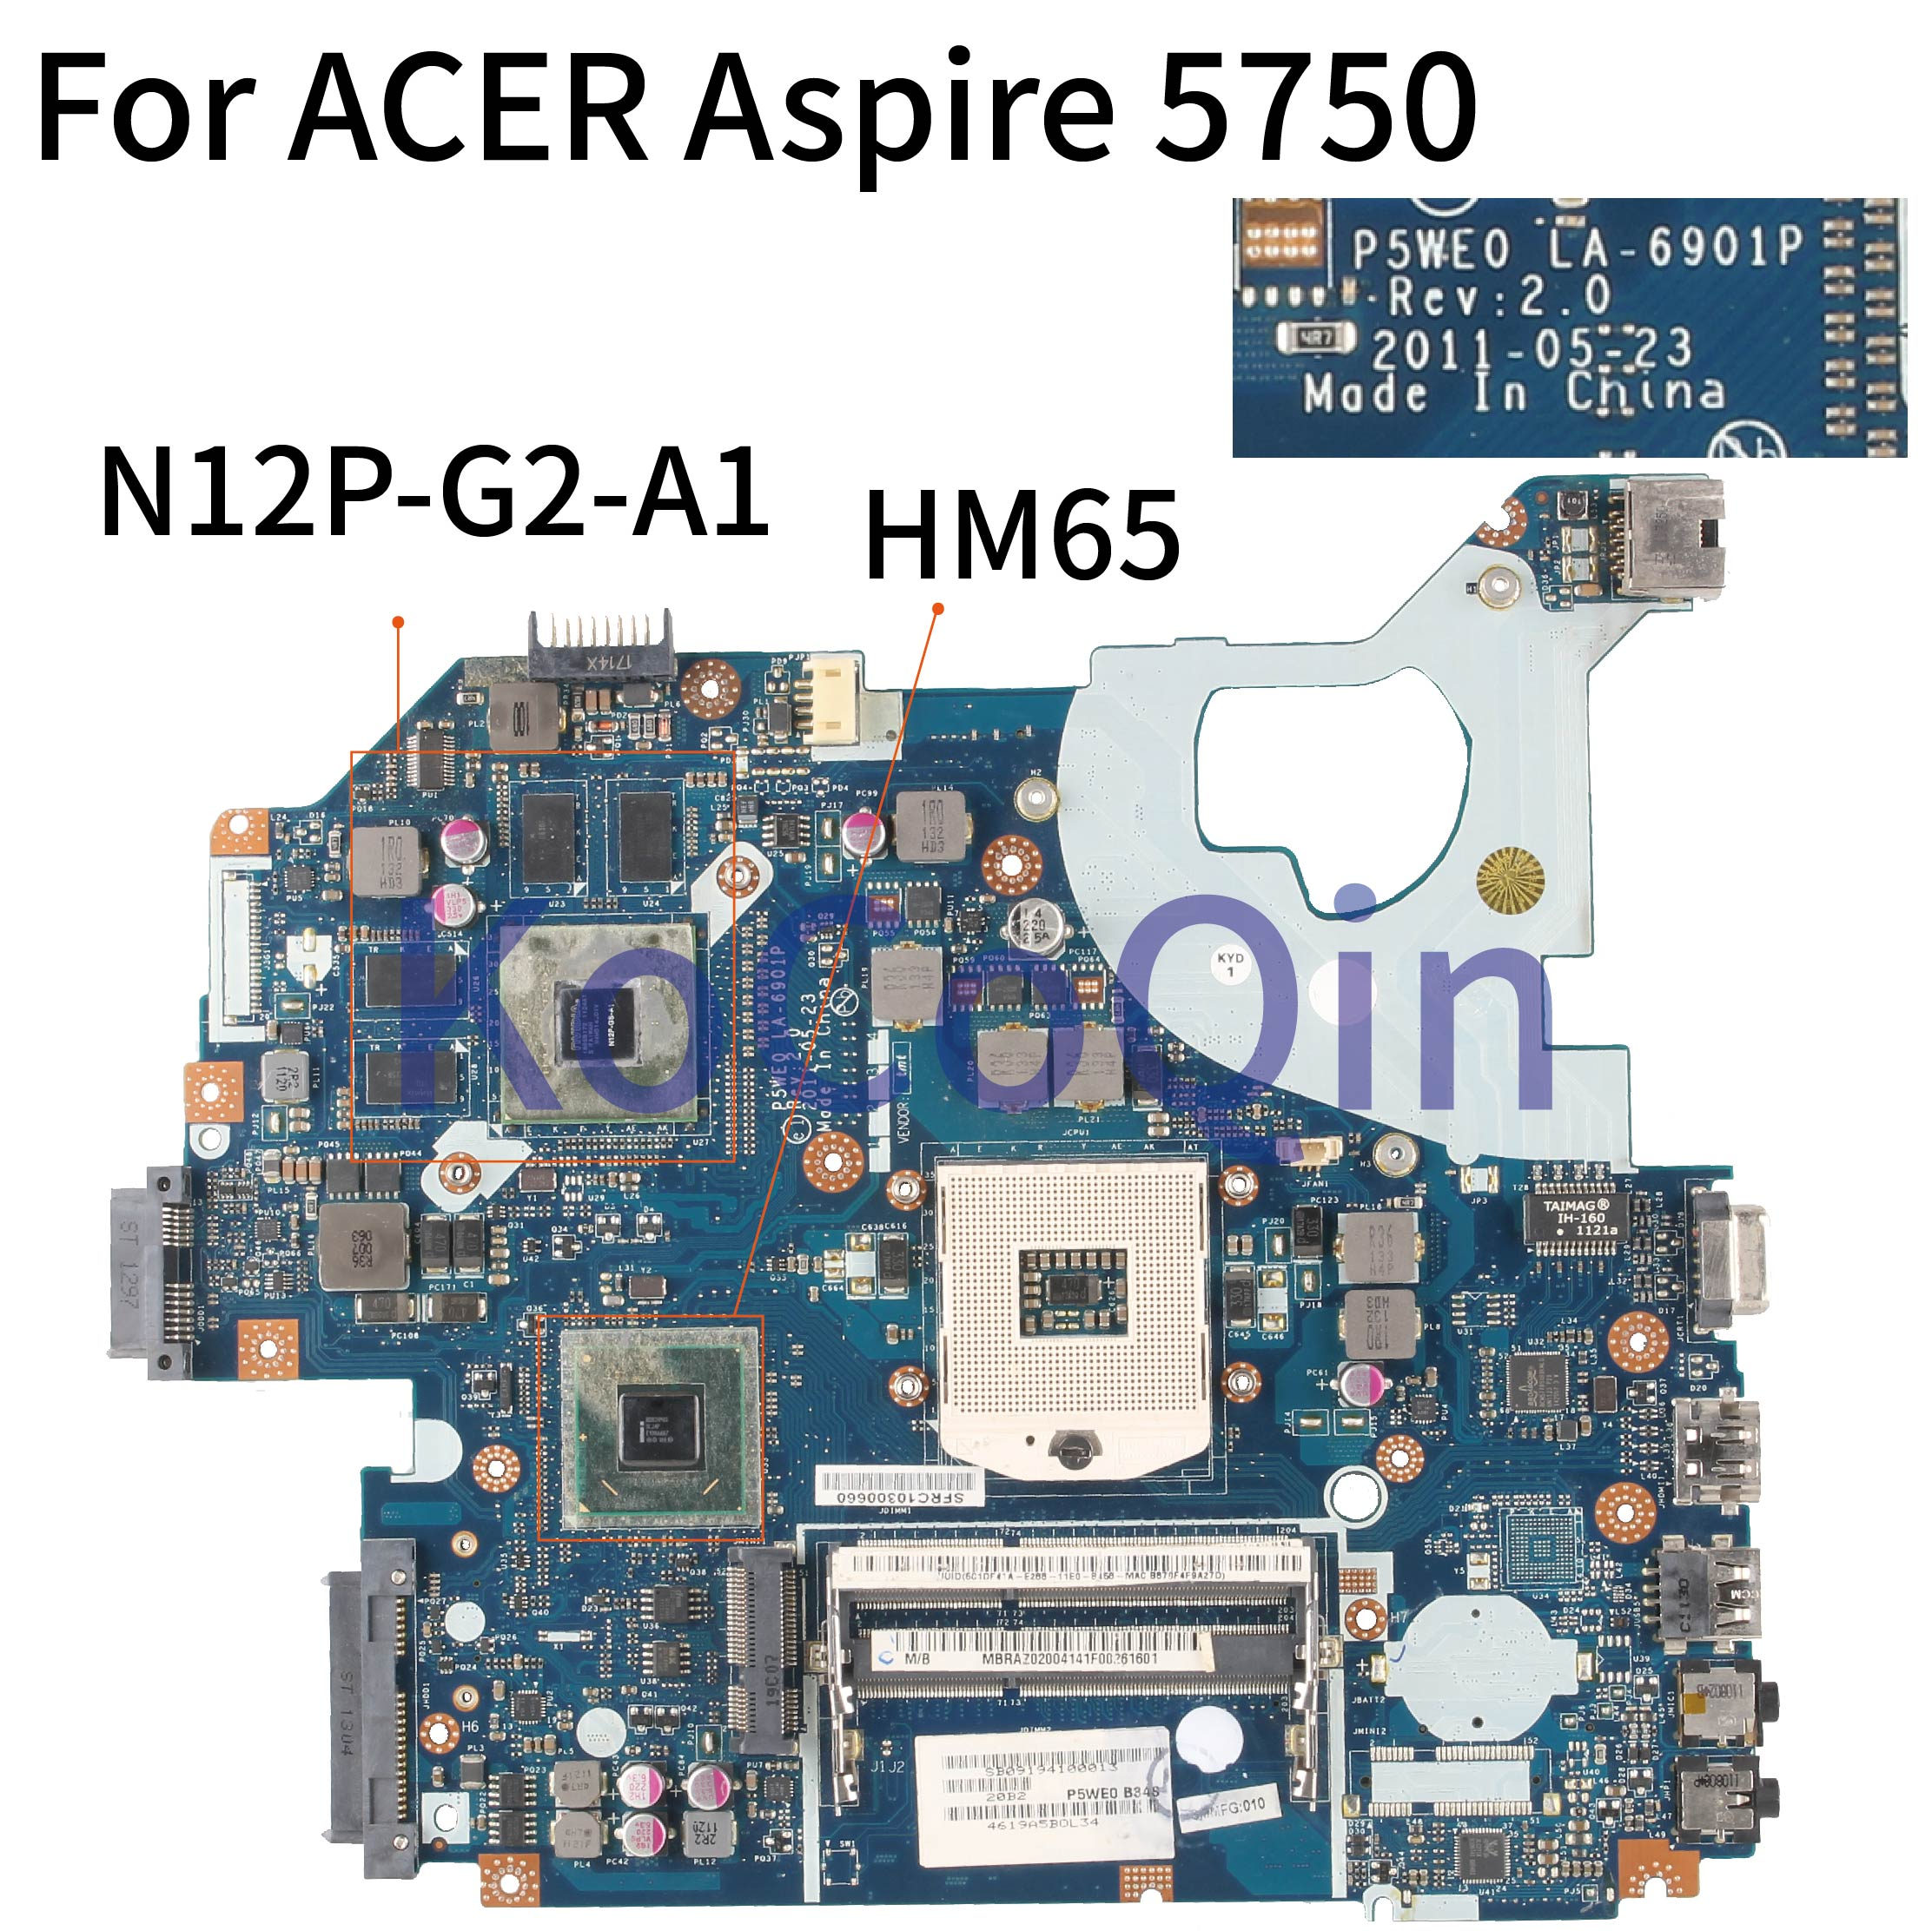 KoCoQin Laptop motherboard For ACER Aspire 5750 5750G GT540M Mainboard P5WE0 LA-6901P MBRAZ02004 HM65 N12P-G2-A1 image